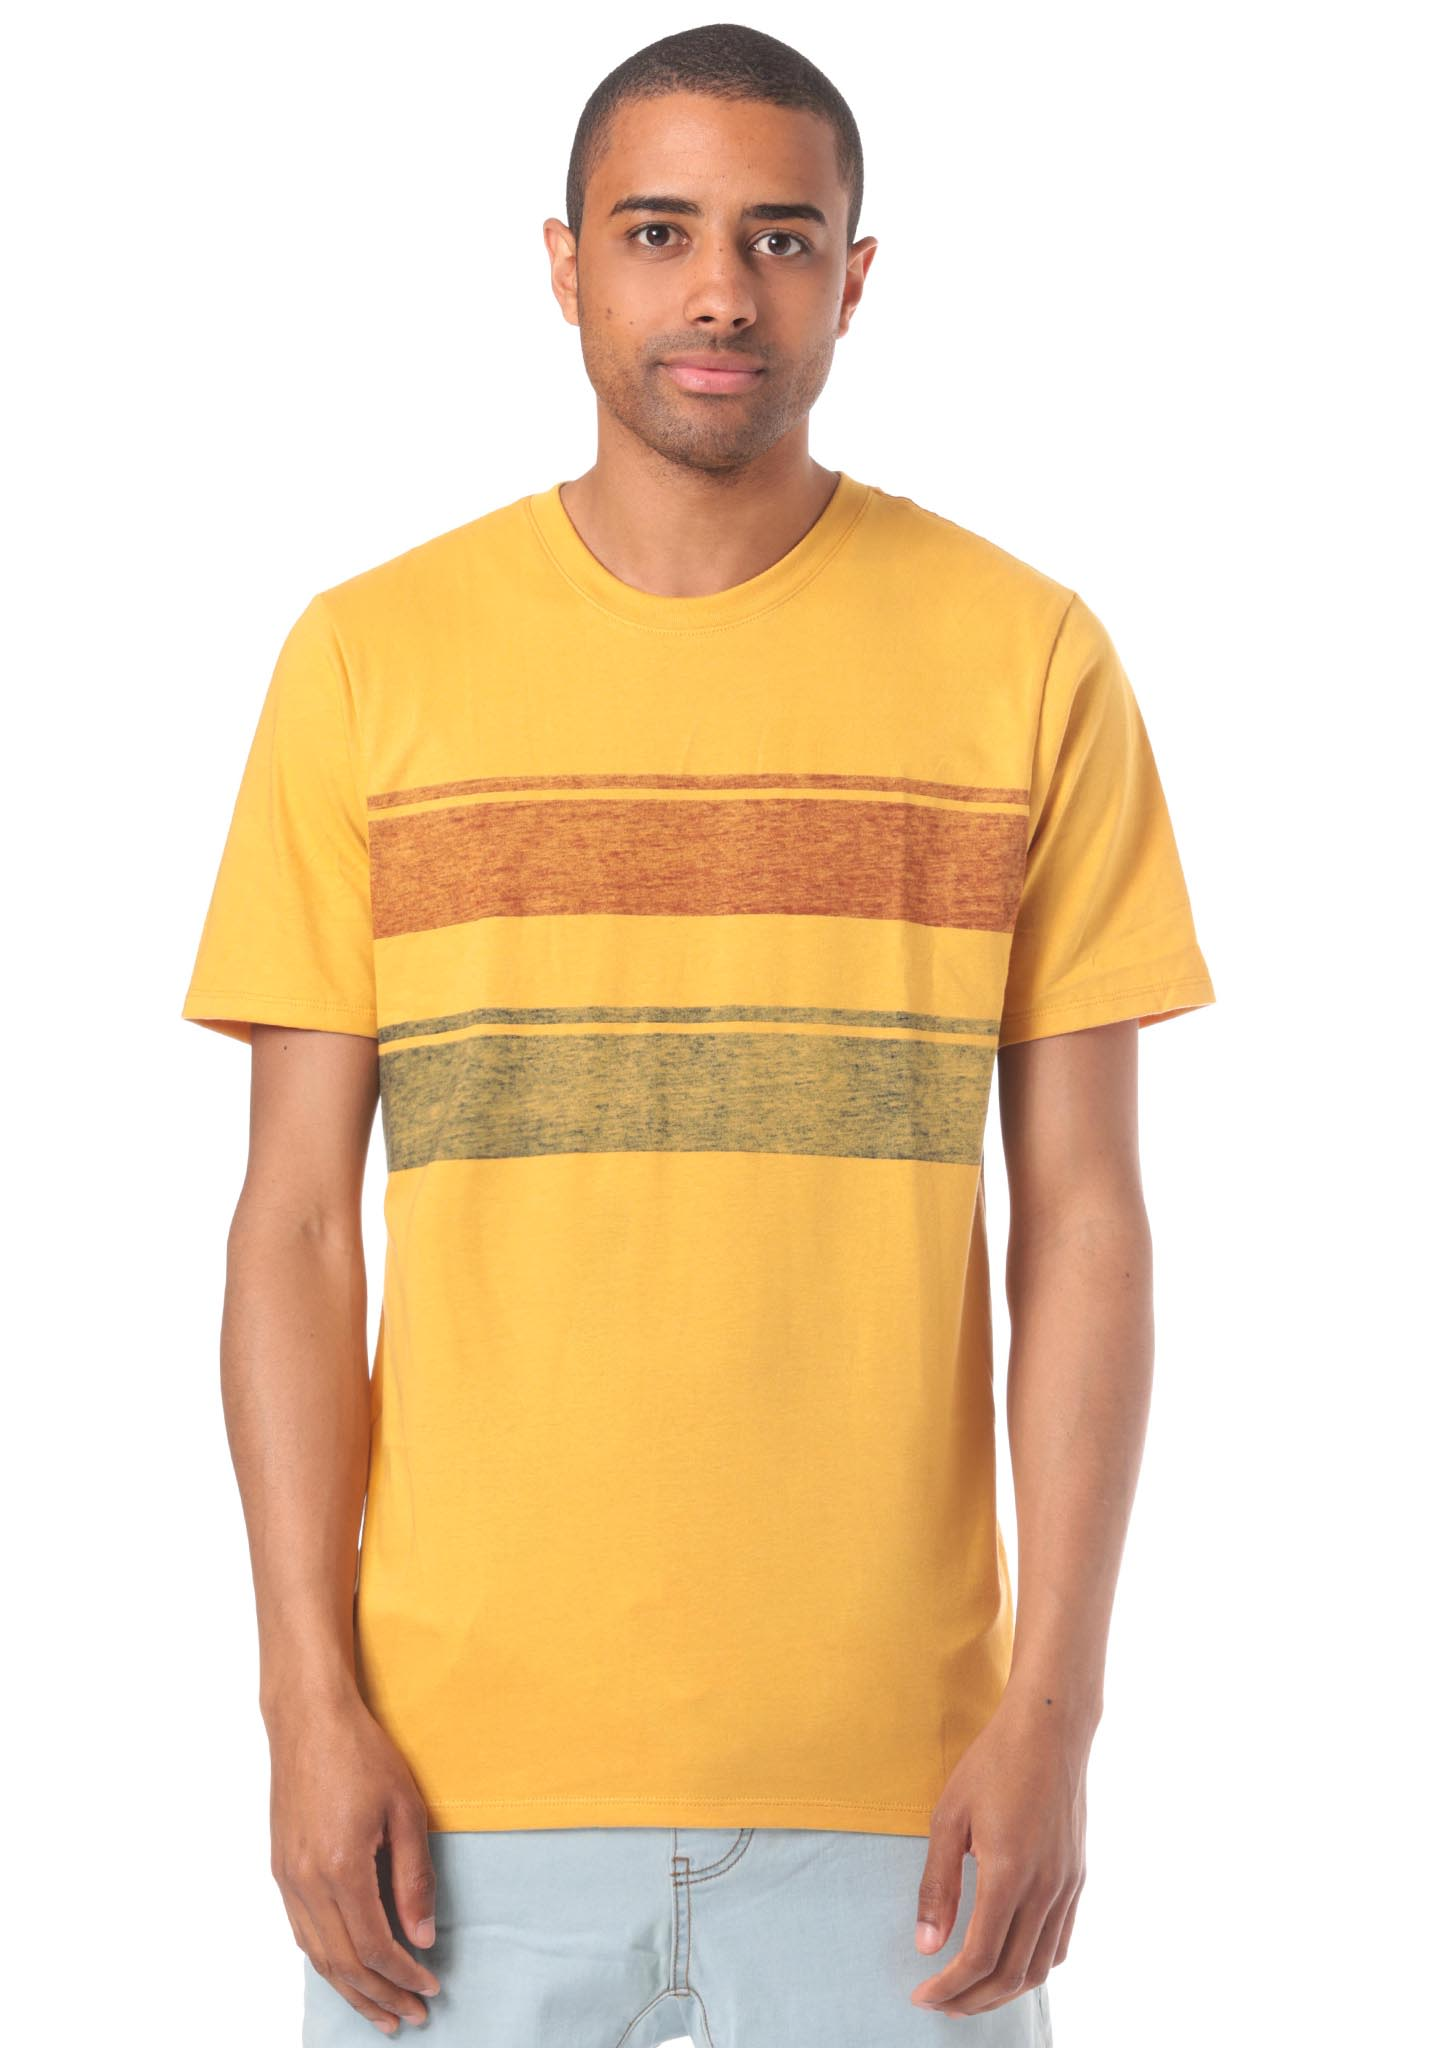 de4eeba569 Hurley Pendleton Yellowstone - T-Shirt for Men - Gold - Planet Sports